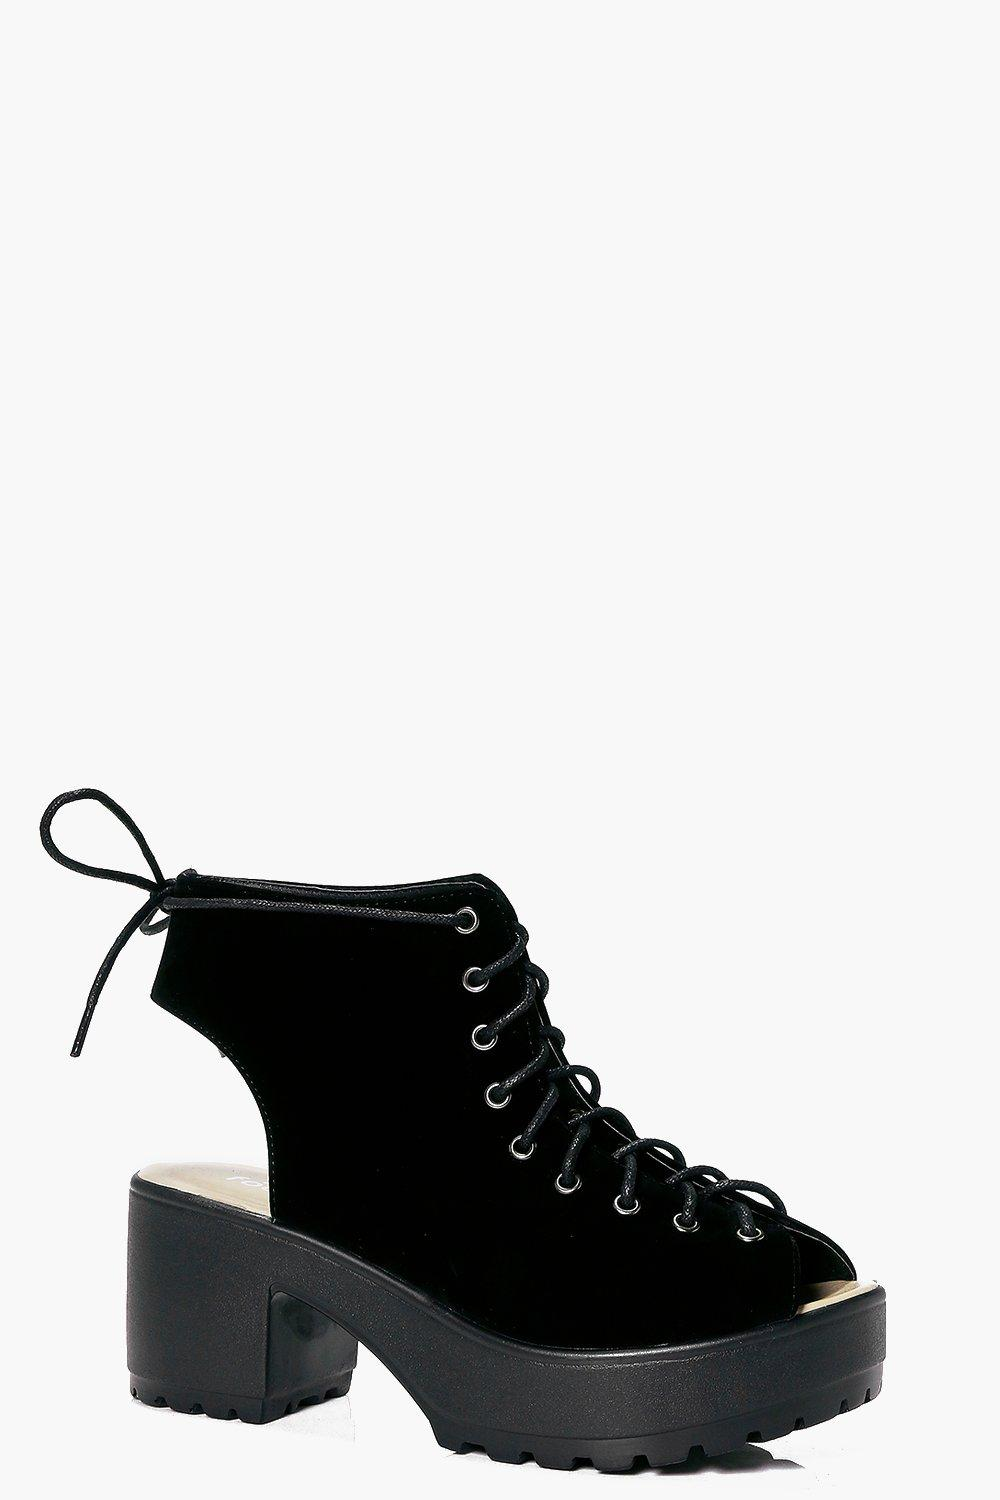 Violet Peeptoe Lace Up Cleated Shoe Boot